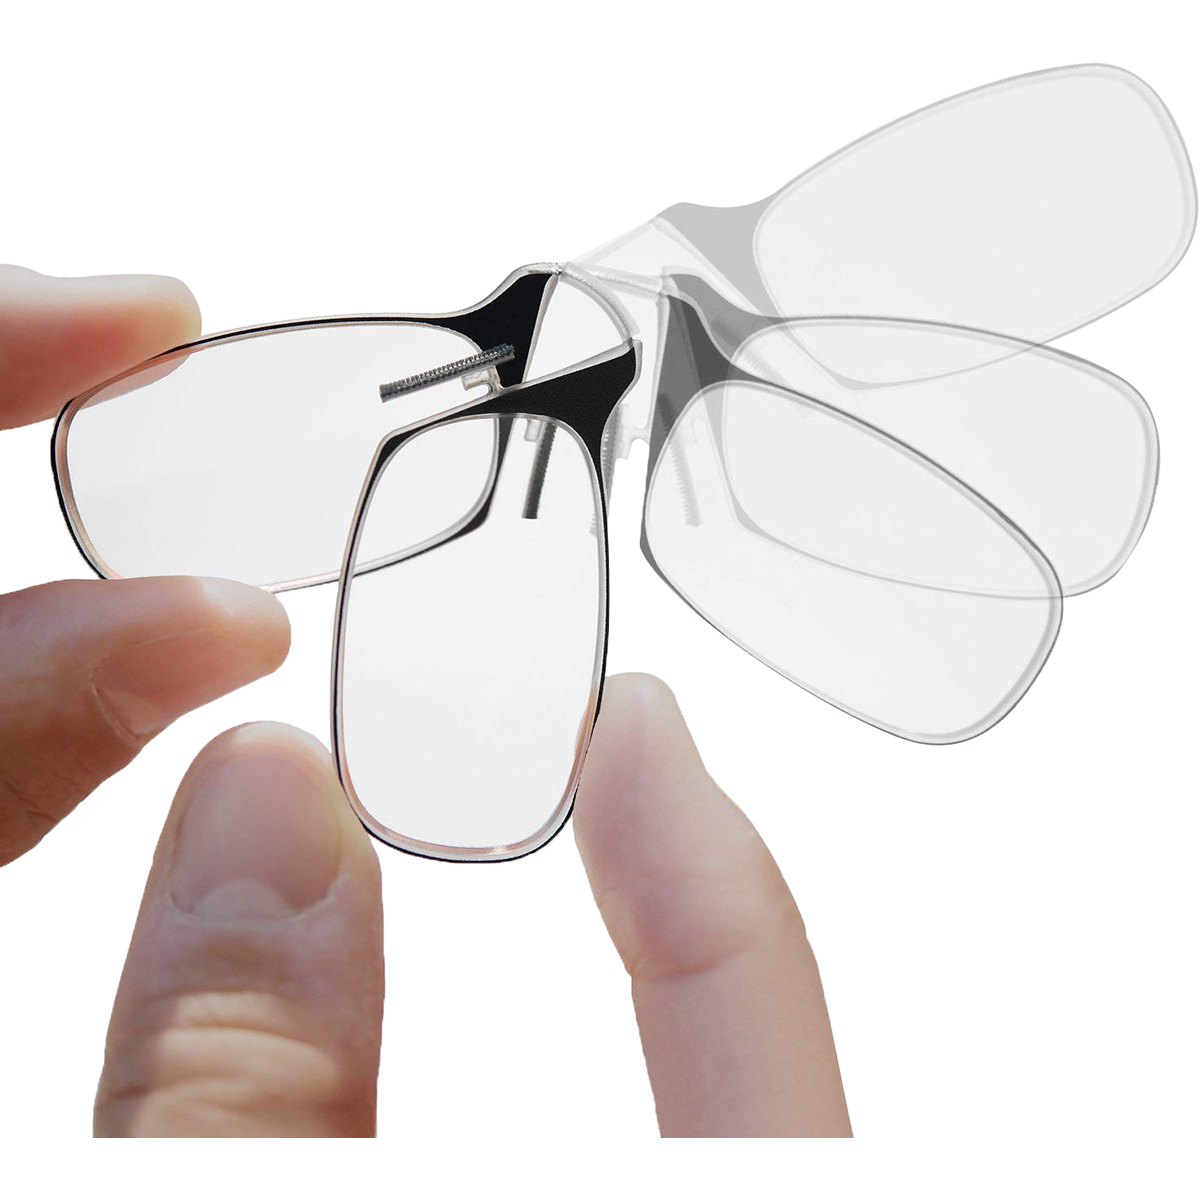 ThinOptics-Secure-Fit-Armless-Ultralight-Reading-Glasses-with-Universal-Pod-Case thumbnail 6